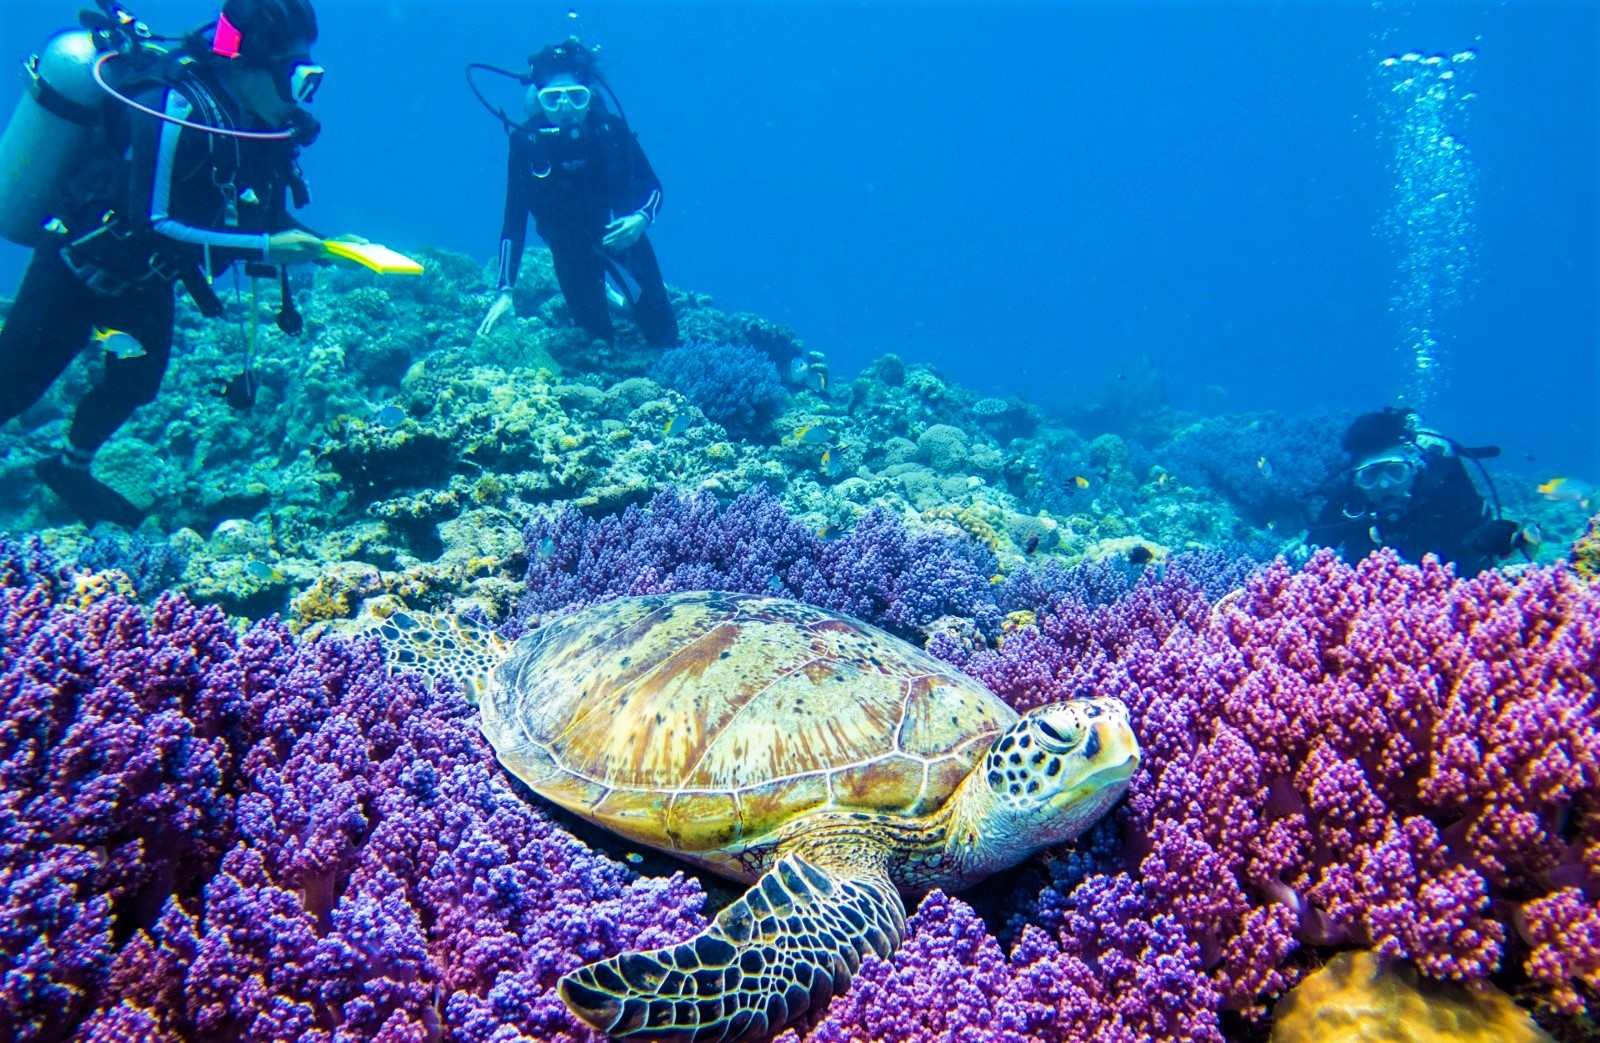 Diving in Okinawa's ocean and seeing colourful corals and a turtle